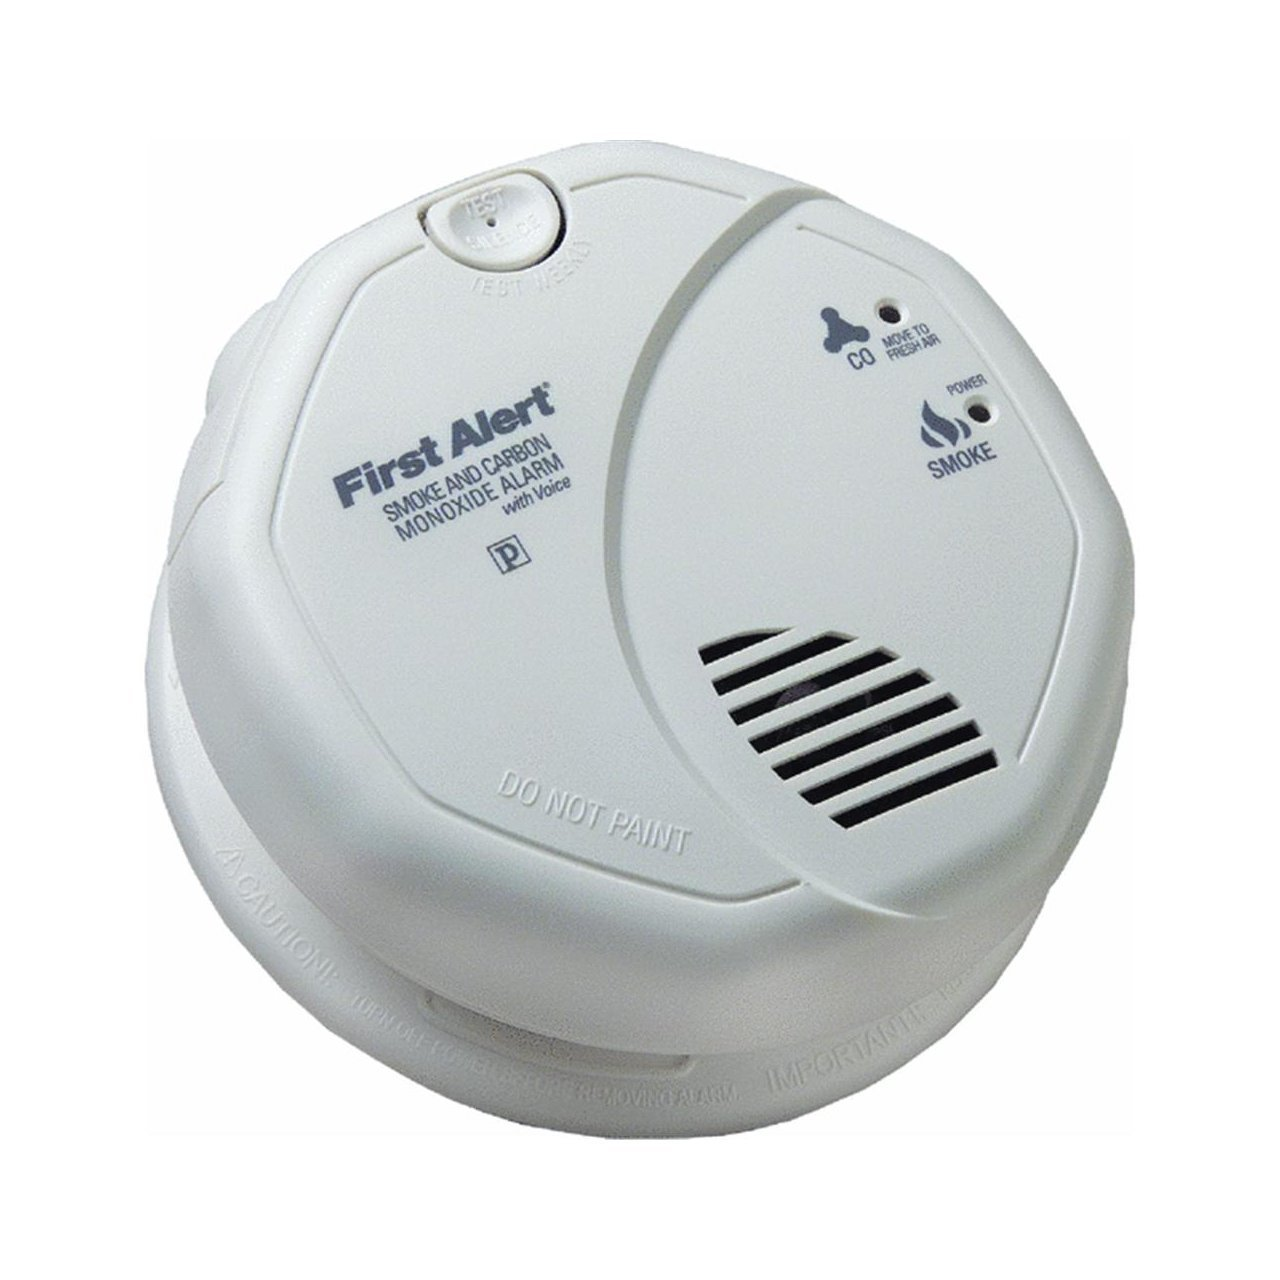 First Alert BRK SC7010BV Hardwired Talking Photoelectric Smoke and Carbon Monoxide Alarm  2 Pack by First Alert